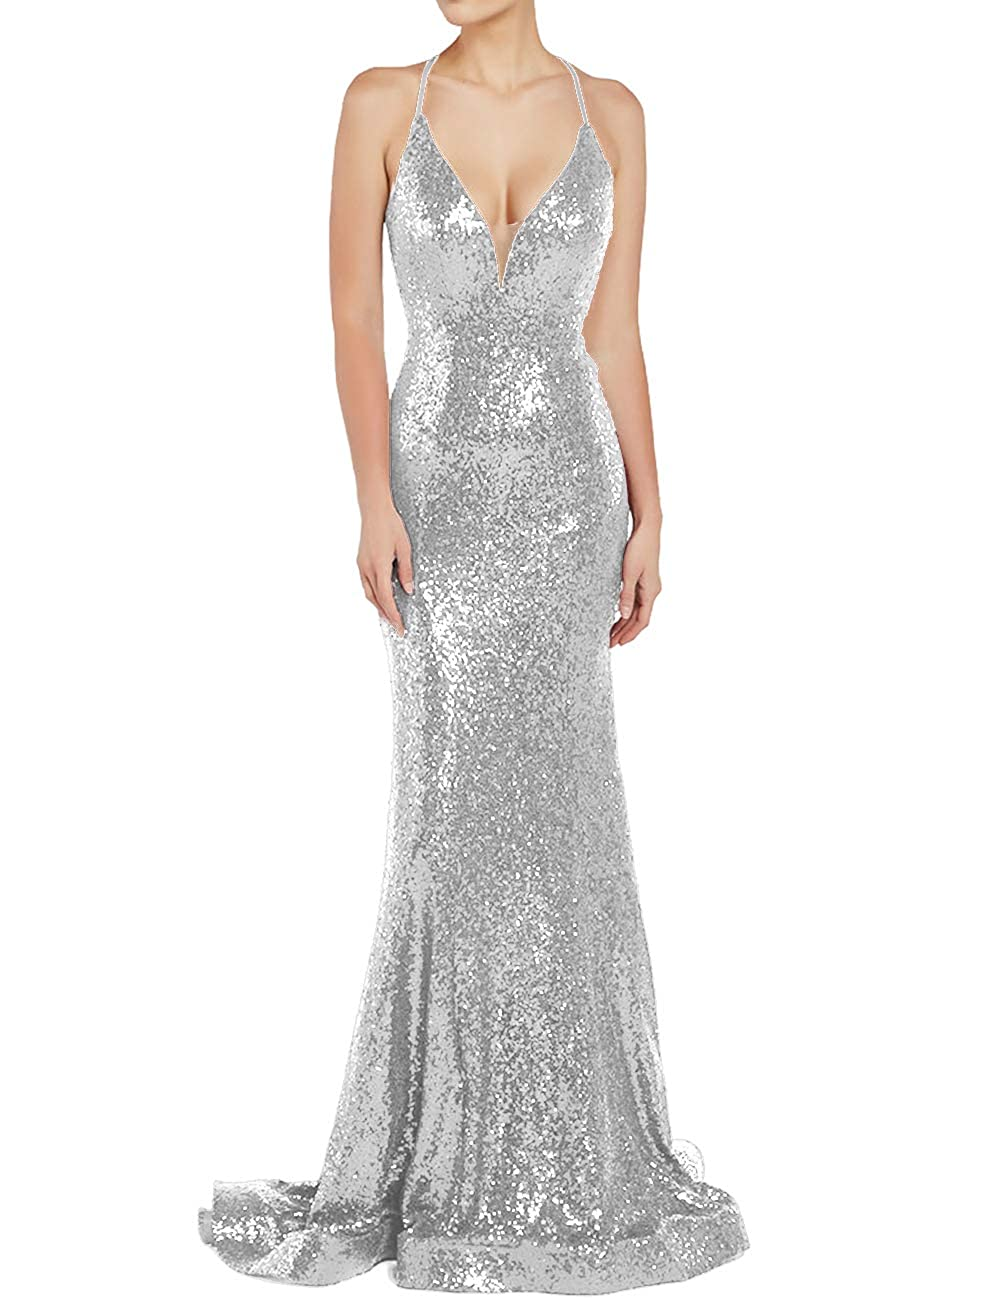 Silver Uther Sequin Evening Prom Dresses Long VNeck Spaghetti Straps Wedding Guest Dress